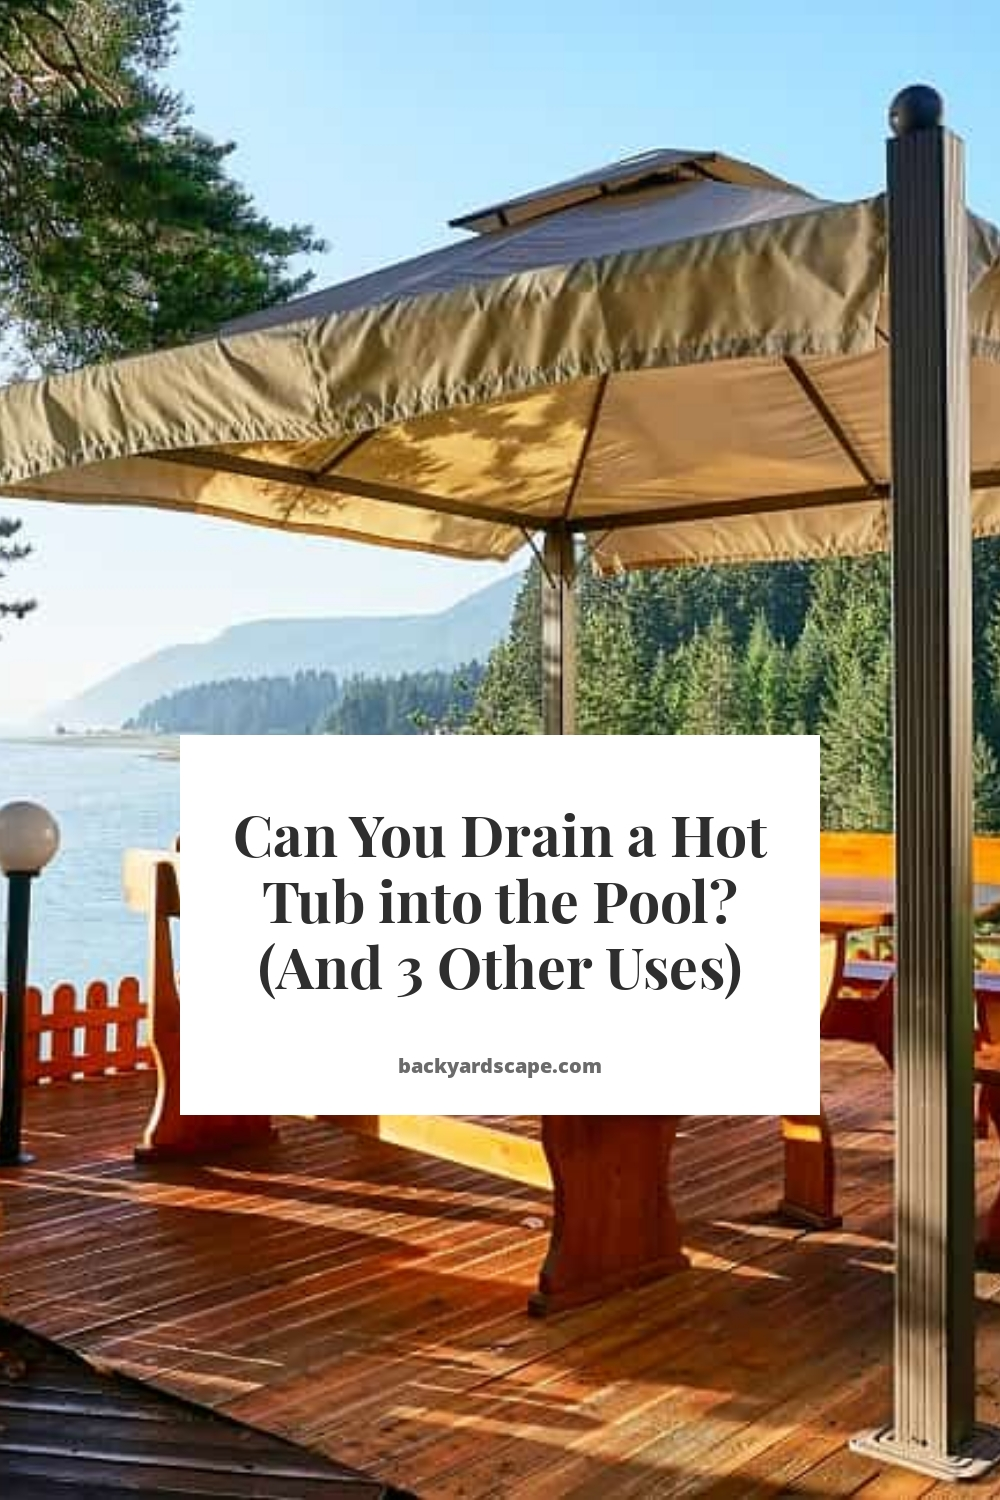 Can You Drain a Hot Tub into the Pool? (And 3 Other Uses)